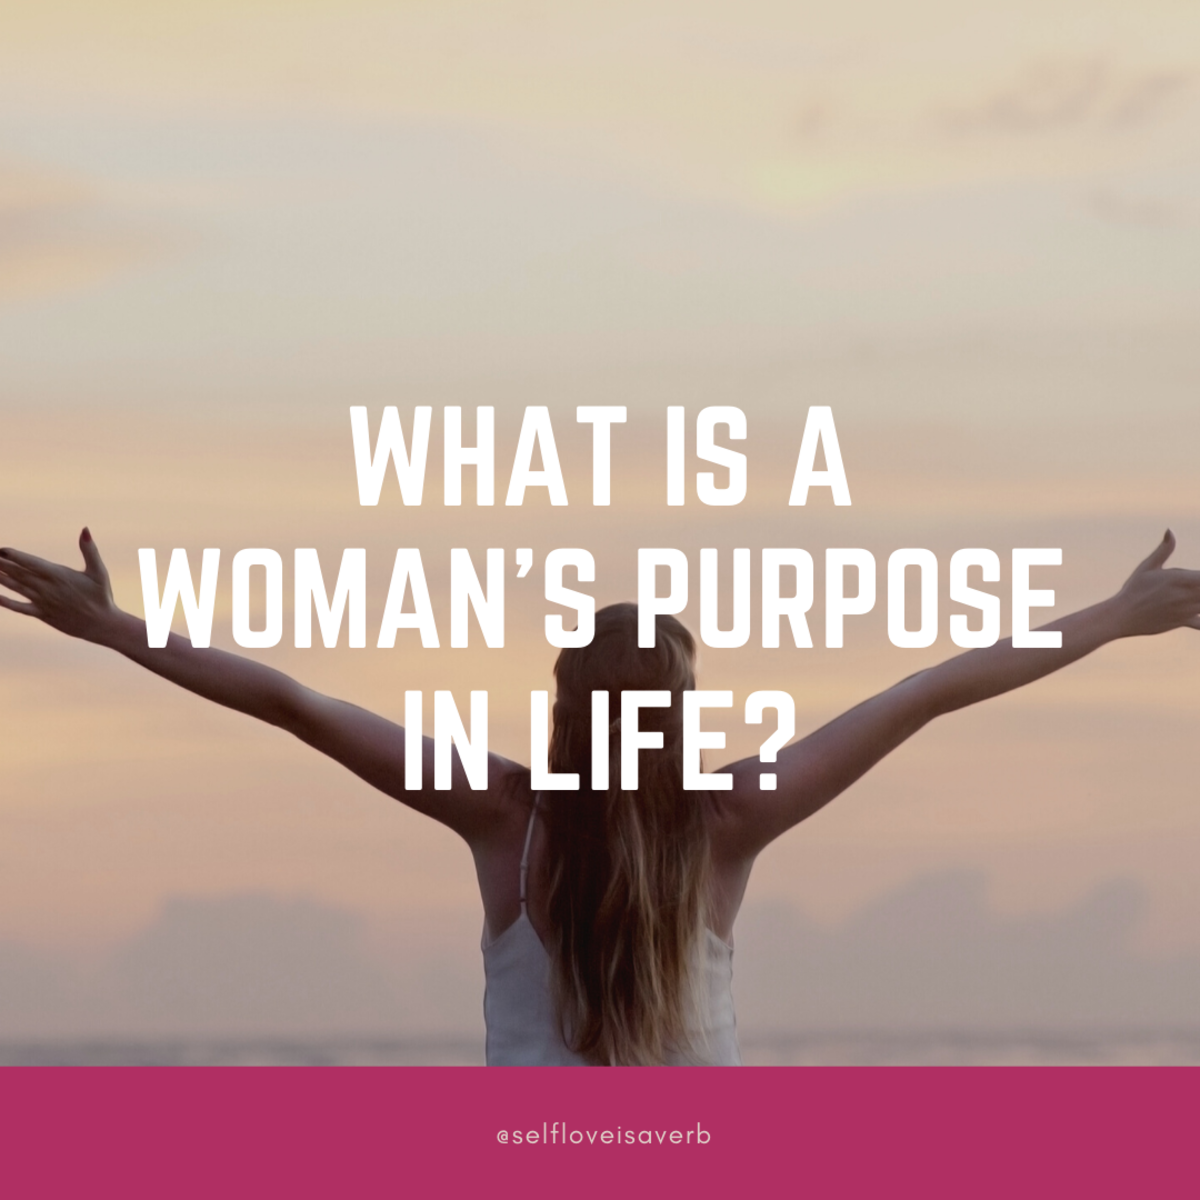 What is a Woman's Purpose in Life?